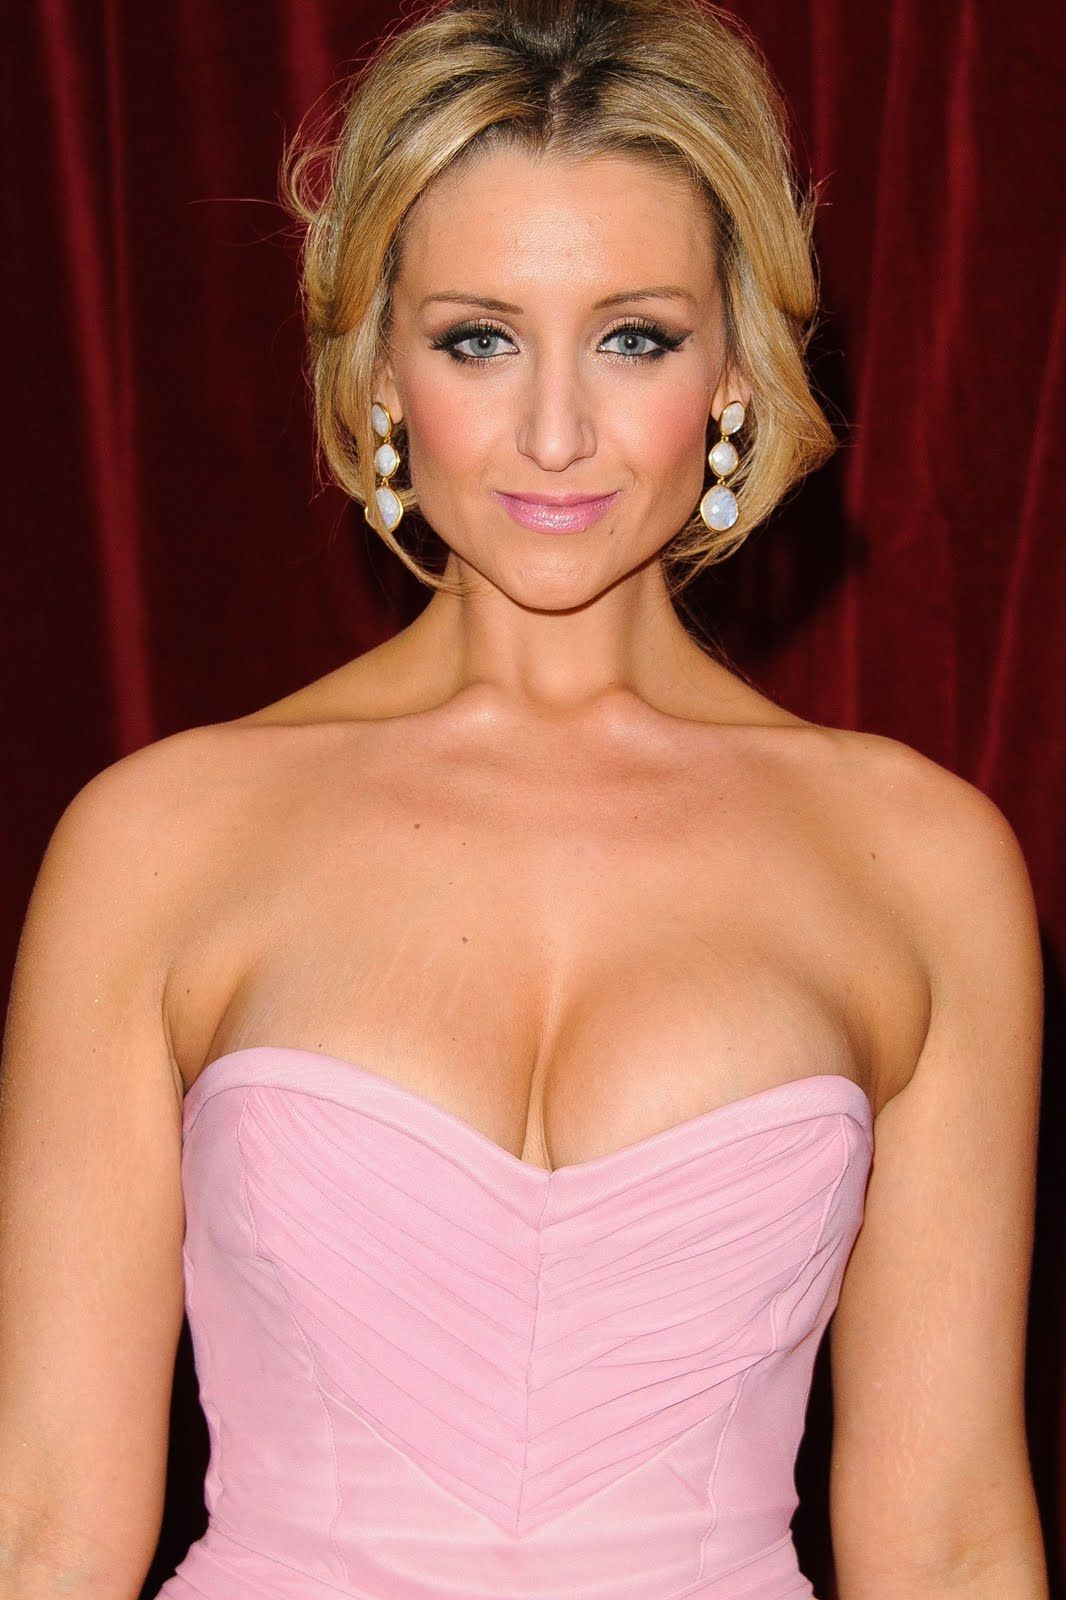 Cleavage Catherine Tyldesley nude (93 foto and video), Ass, Paparazzi, Instagram, cameltoe 2015